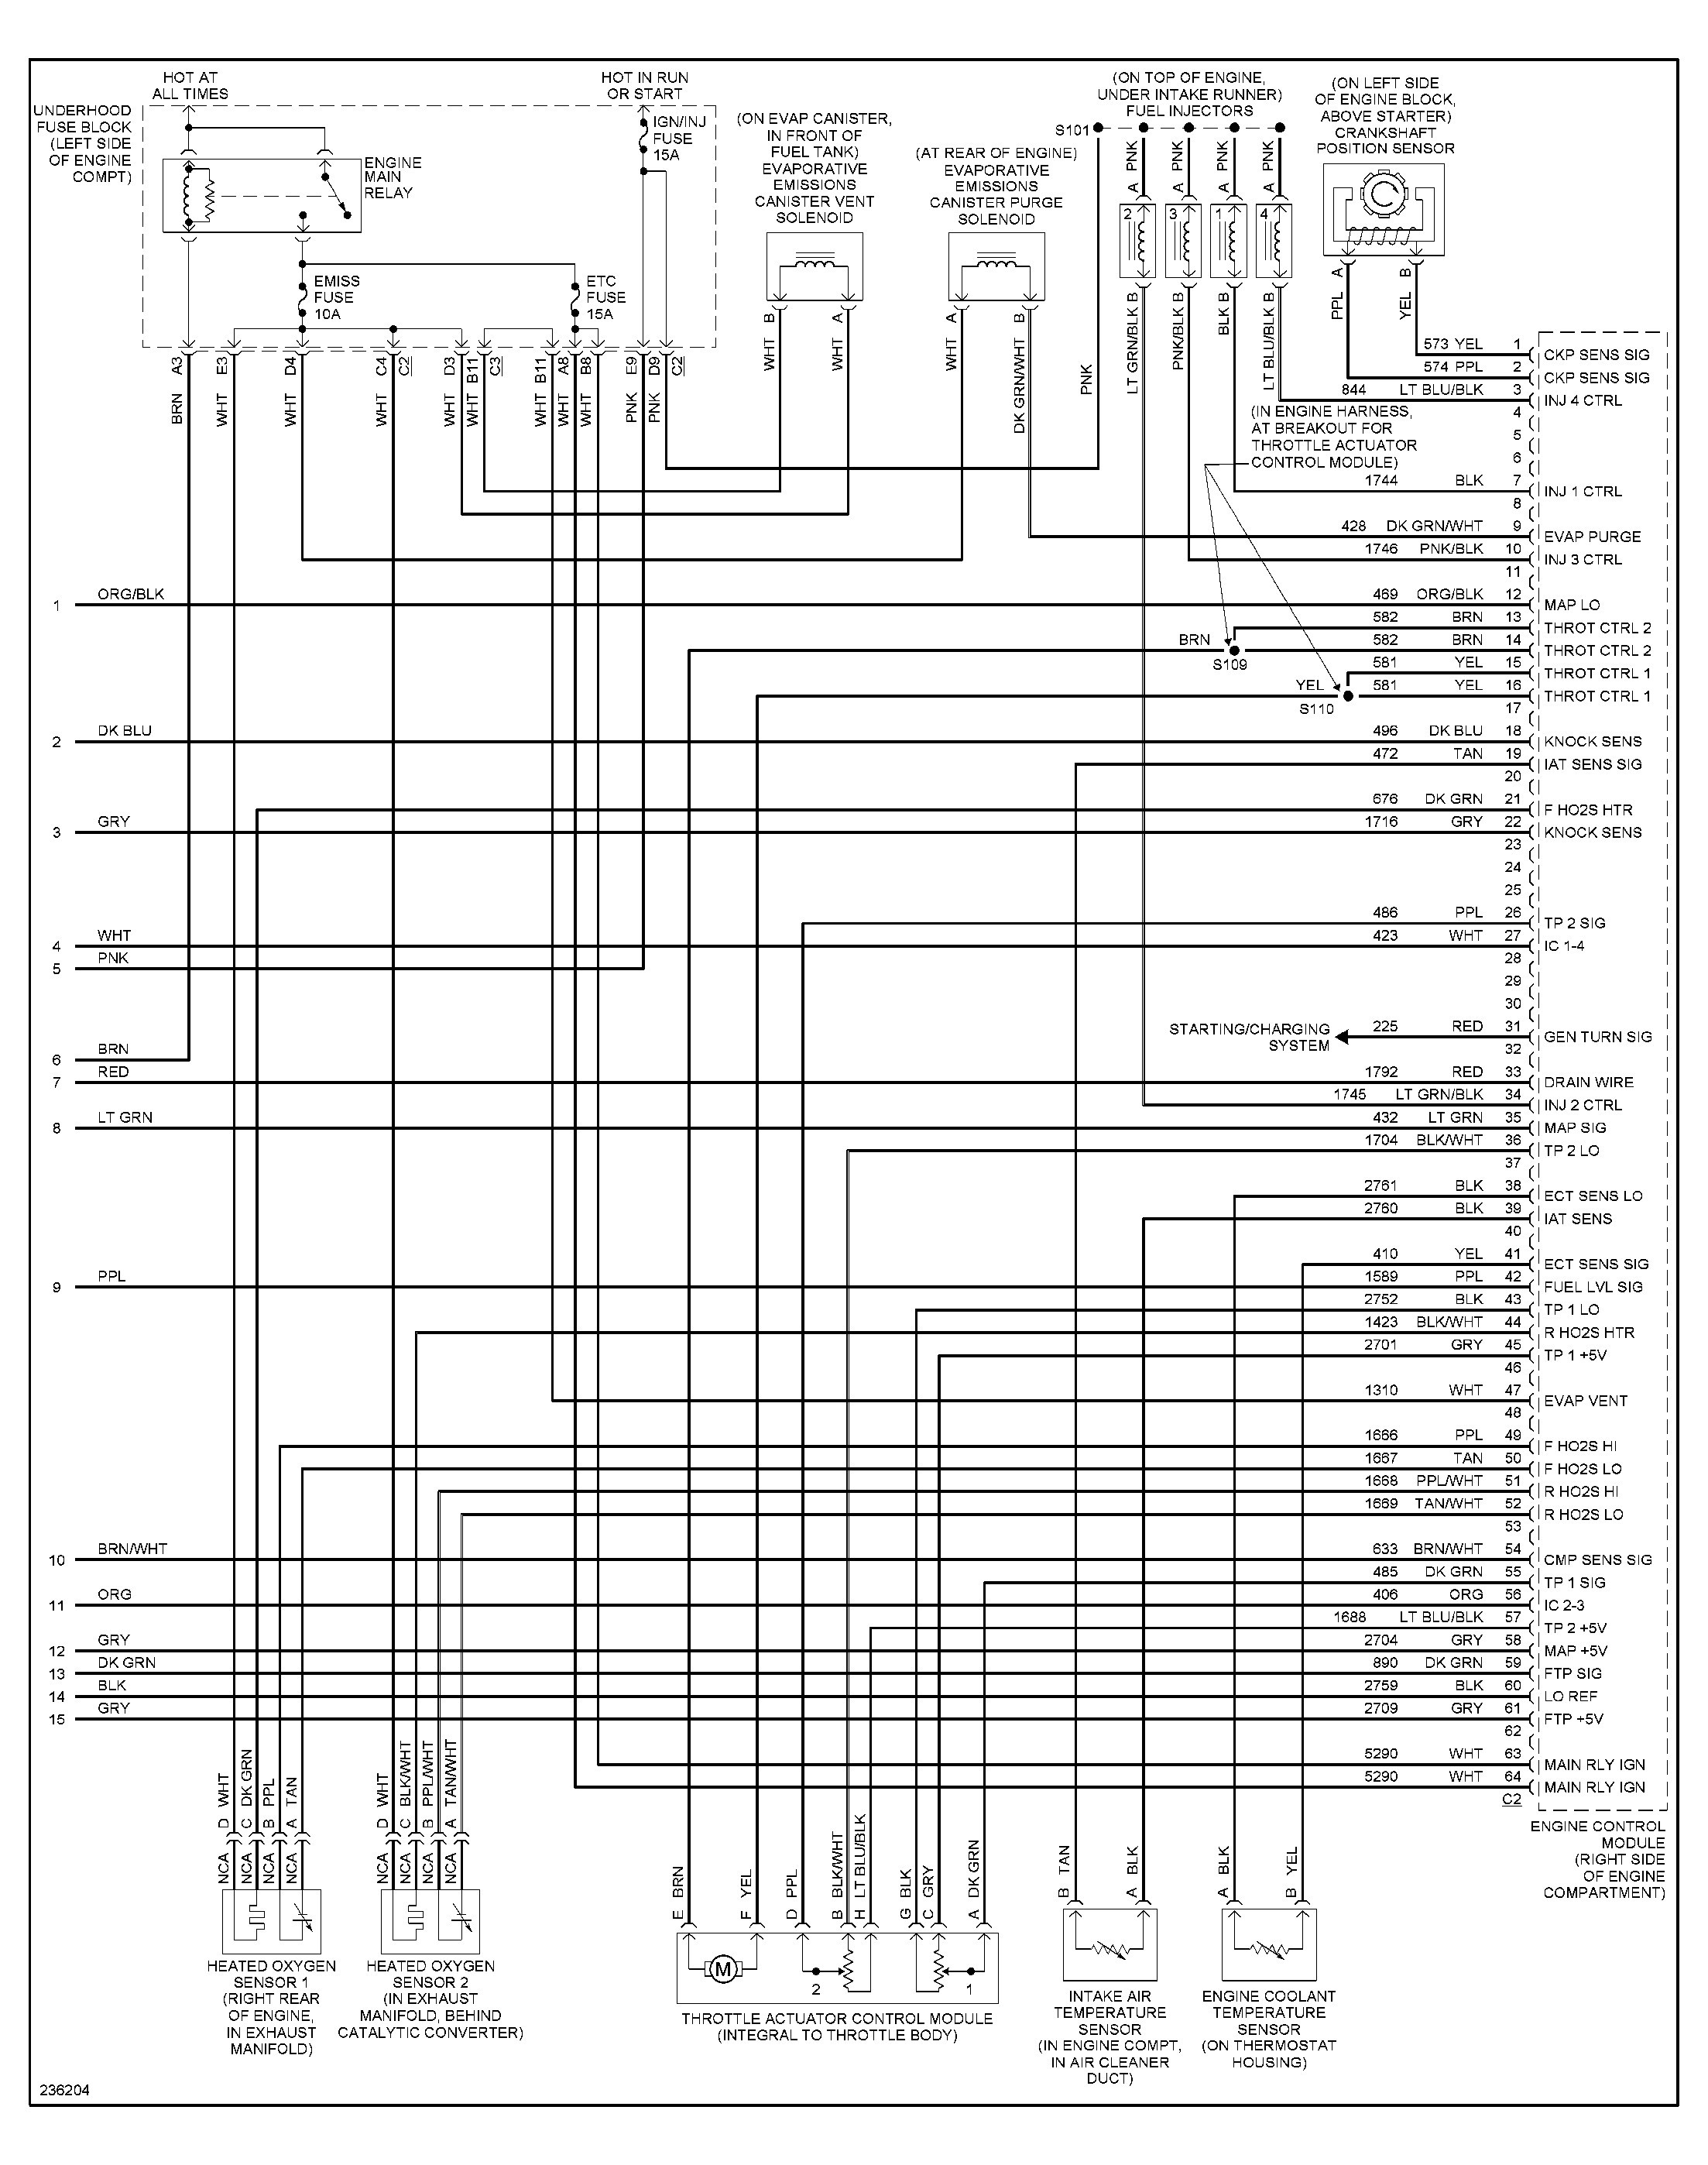 2003 Saturn Vue Wiring Diagram Saturn Vue Emissions Diagram Information Wiring Diagram • Of 2003 Saturn Vue Wiring Diagram 2004 Saturn Vue Schematic Data Wiring •